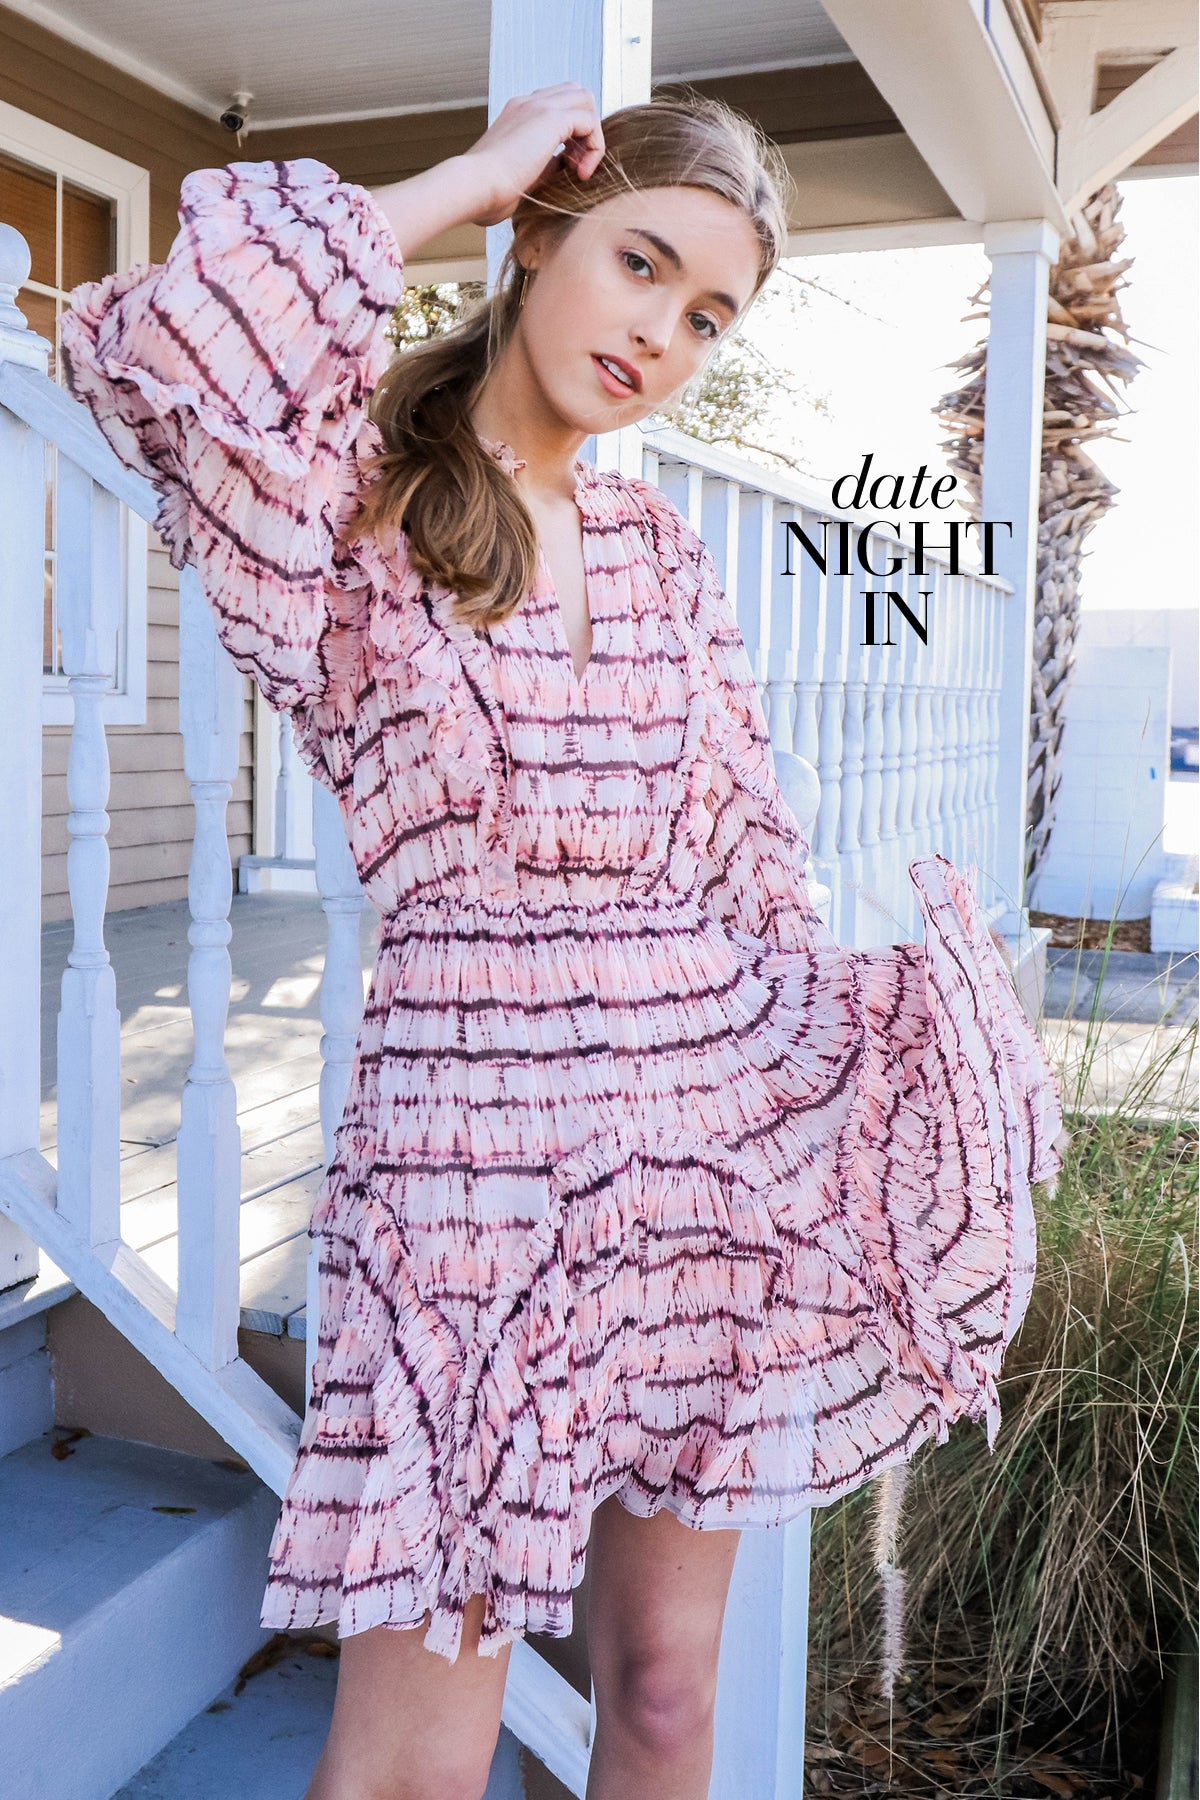 Shop Date Night In - Woman wearing pink knee length dress posing on the porch of a house.